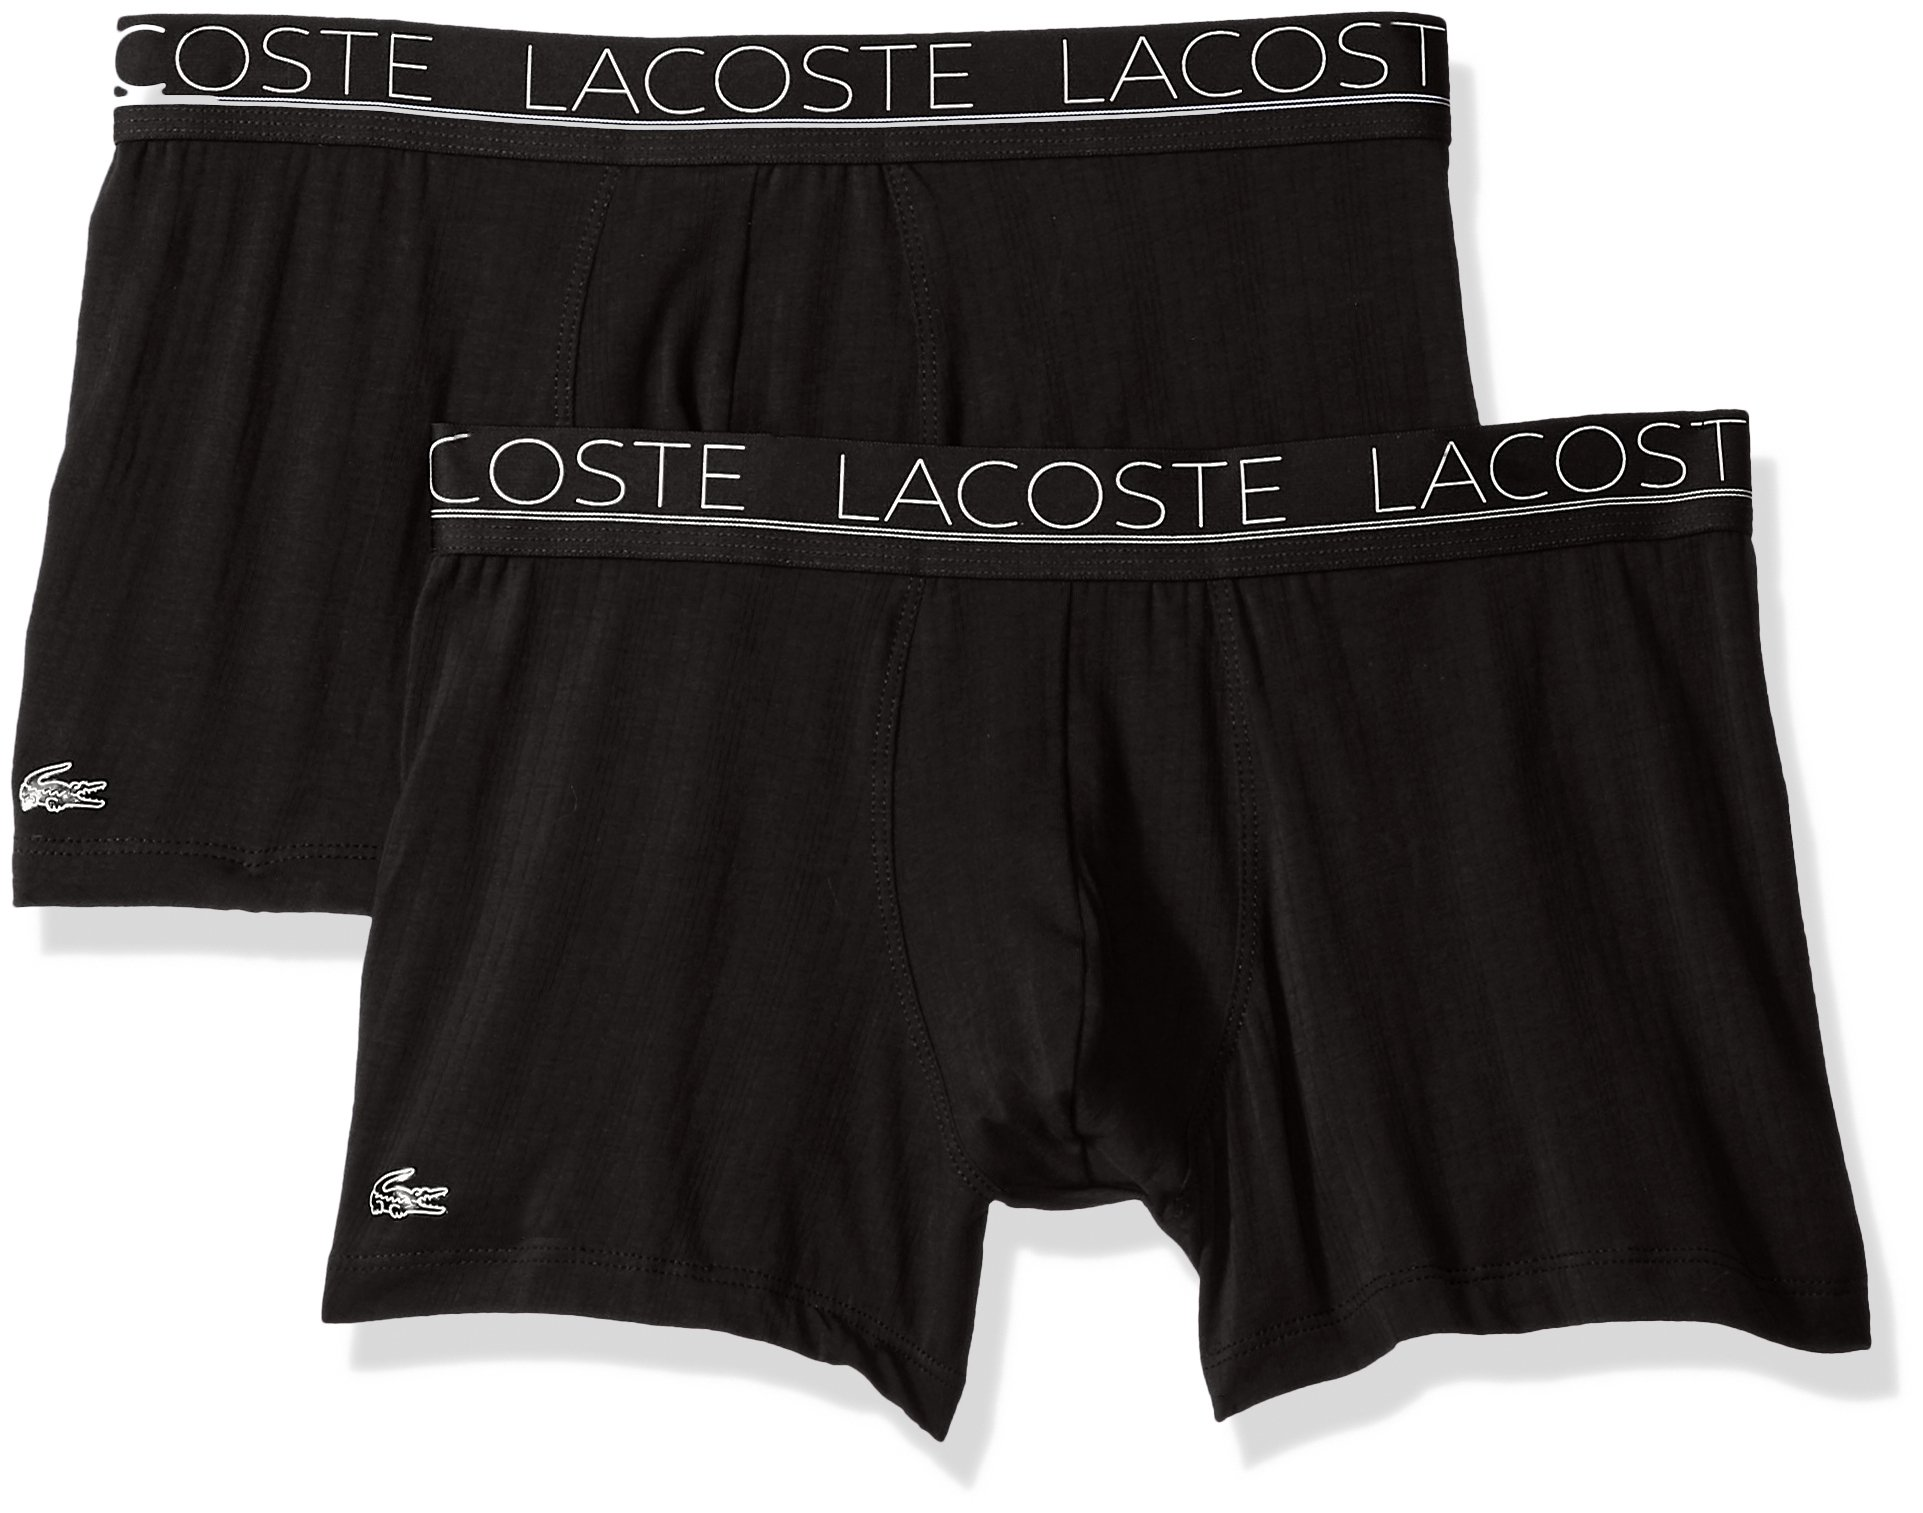 Lacoste Men's 2PK Super Fine Trunk, Black, M